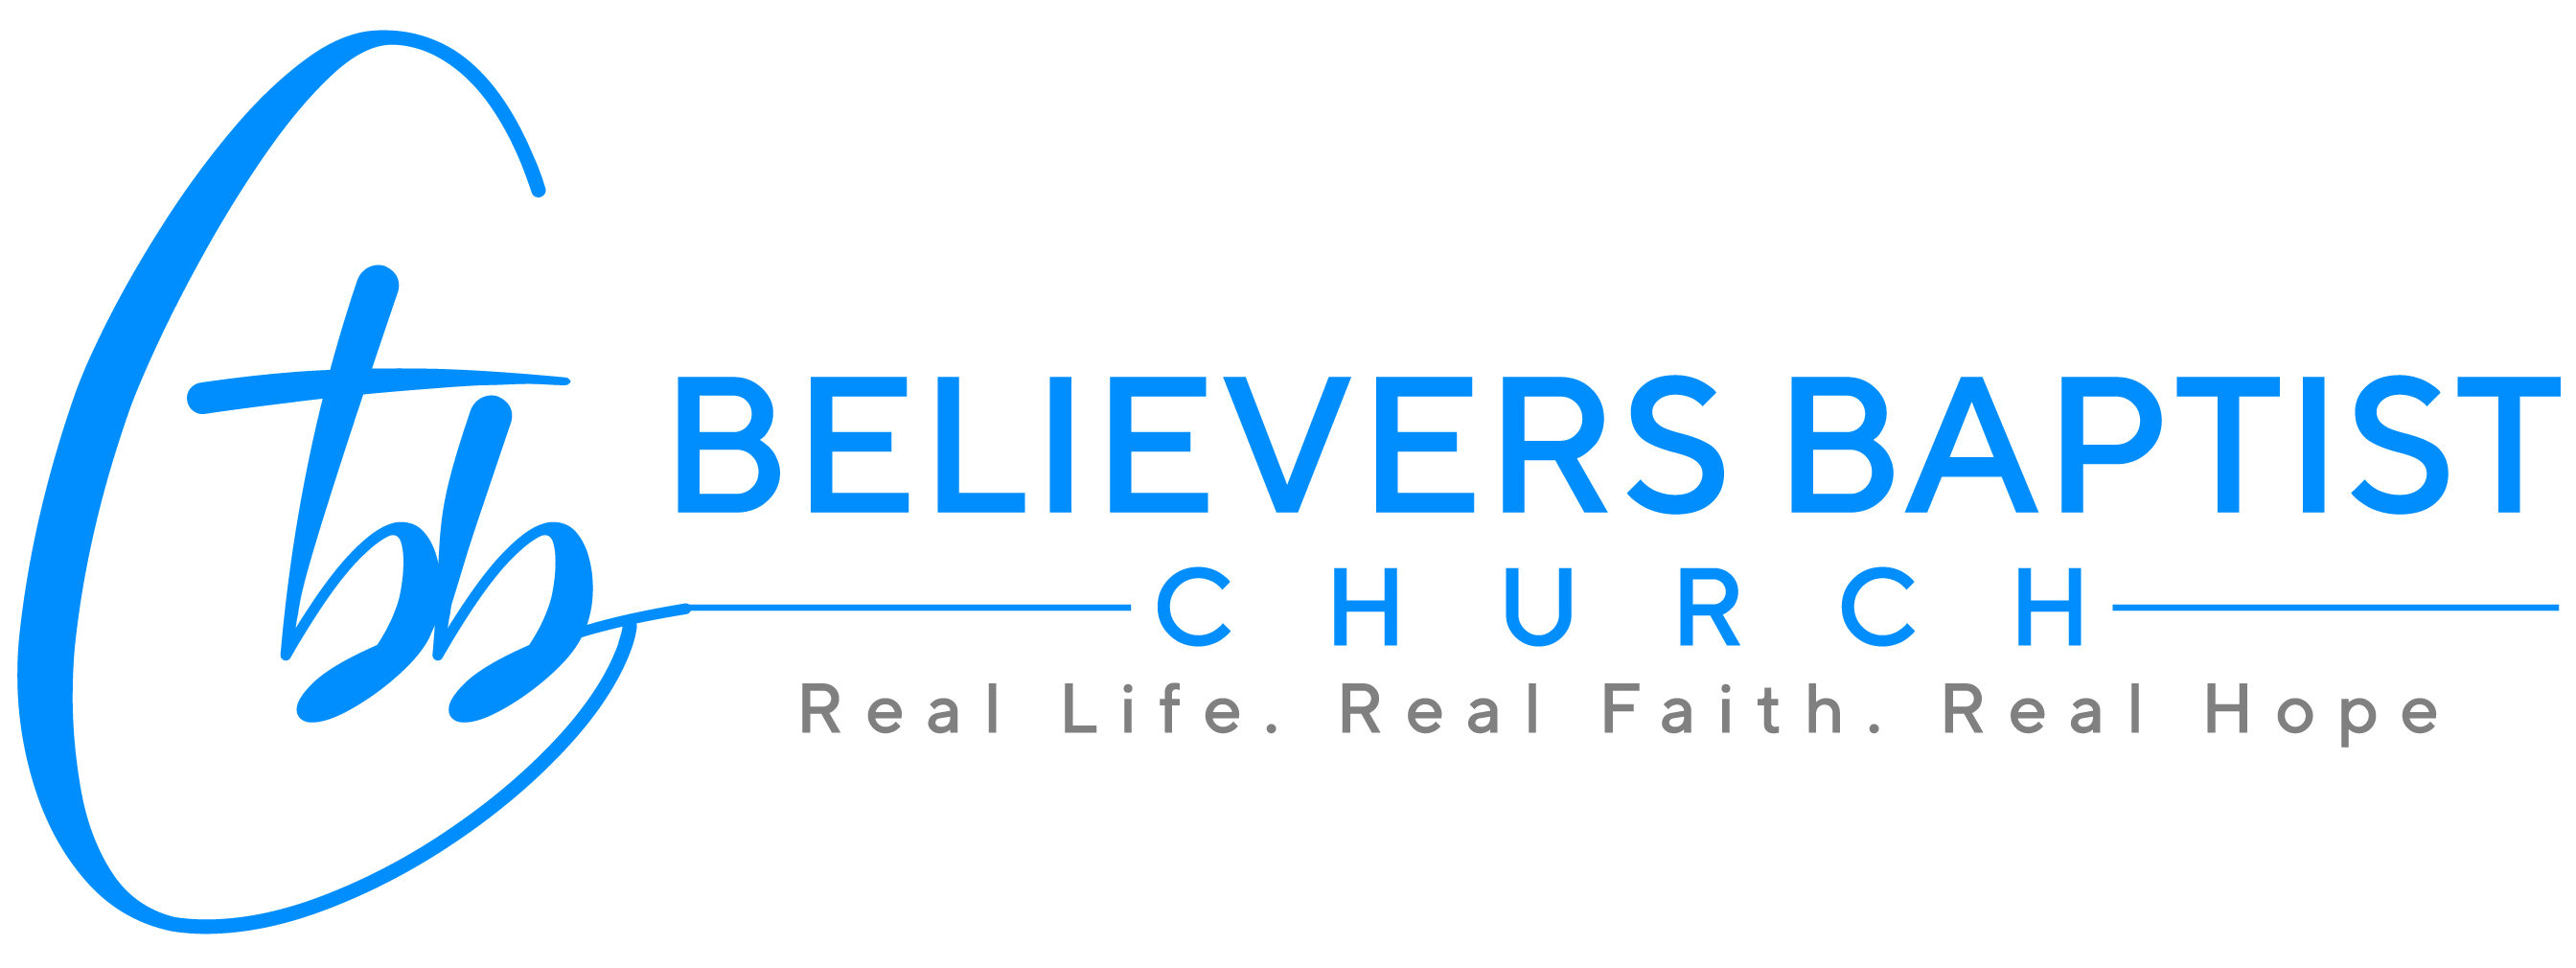 Believers Baptist Church